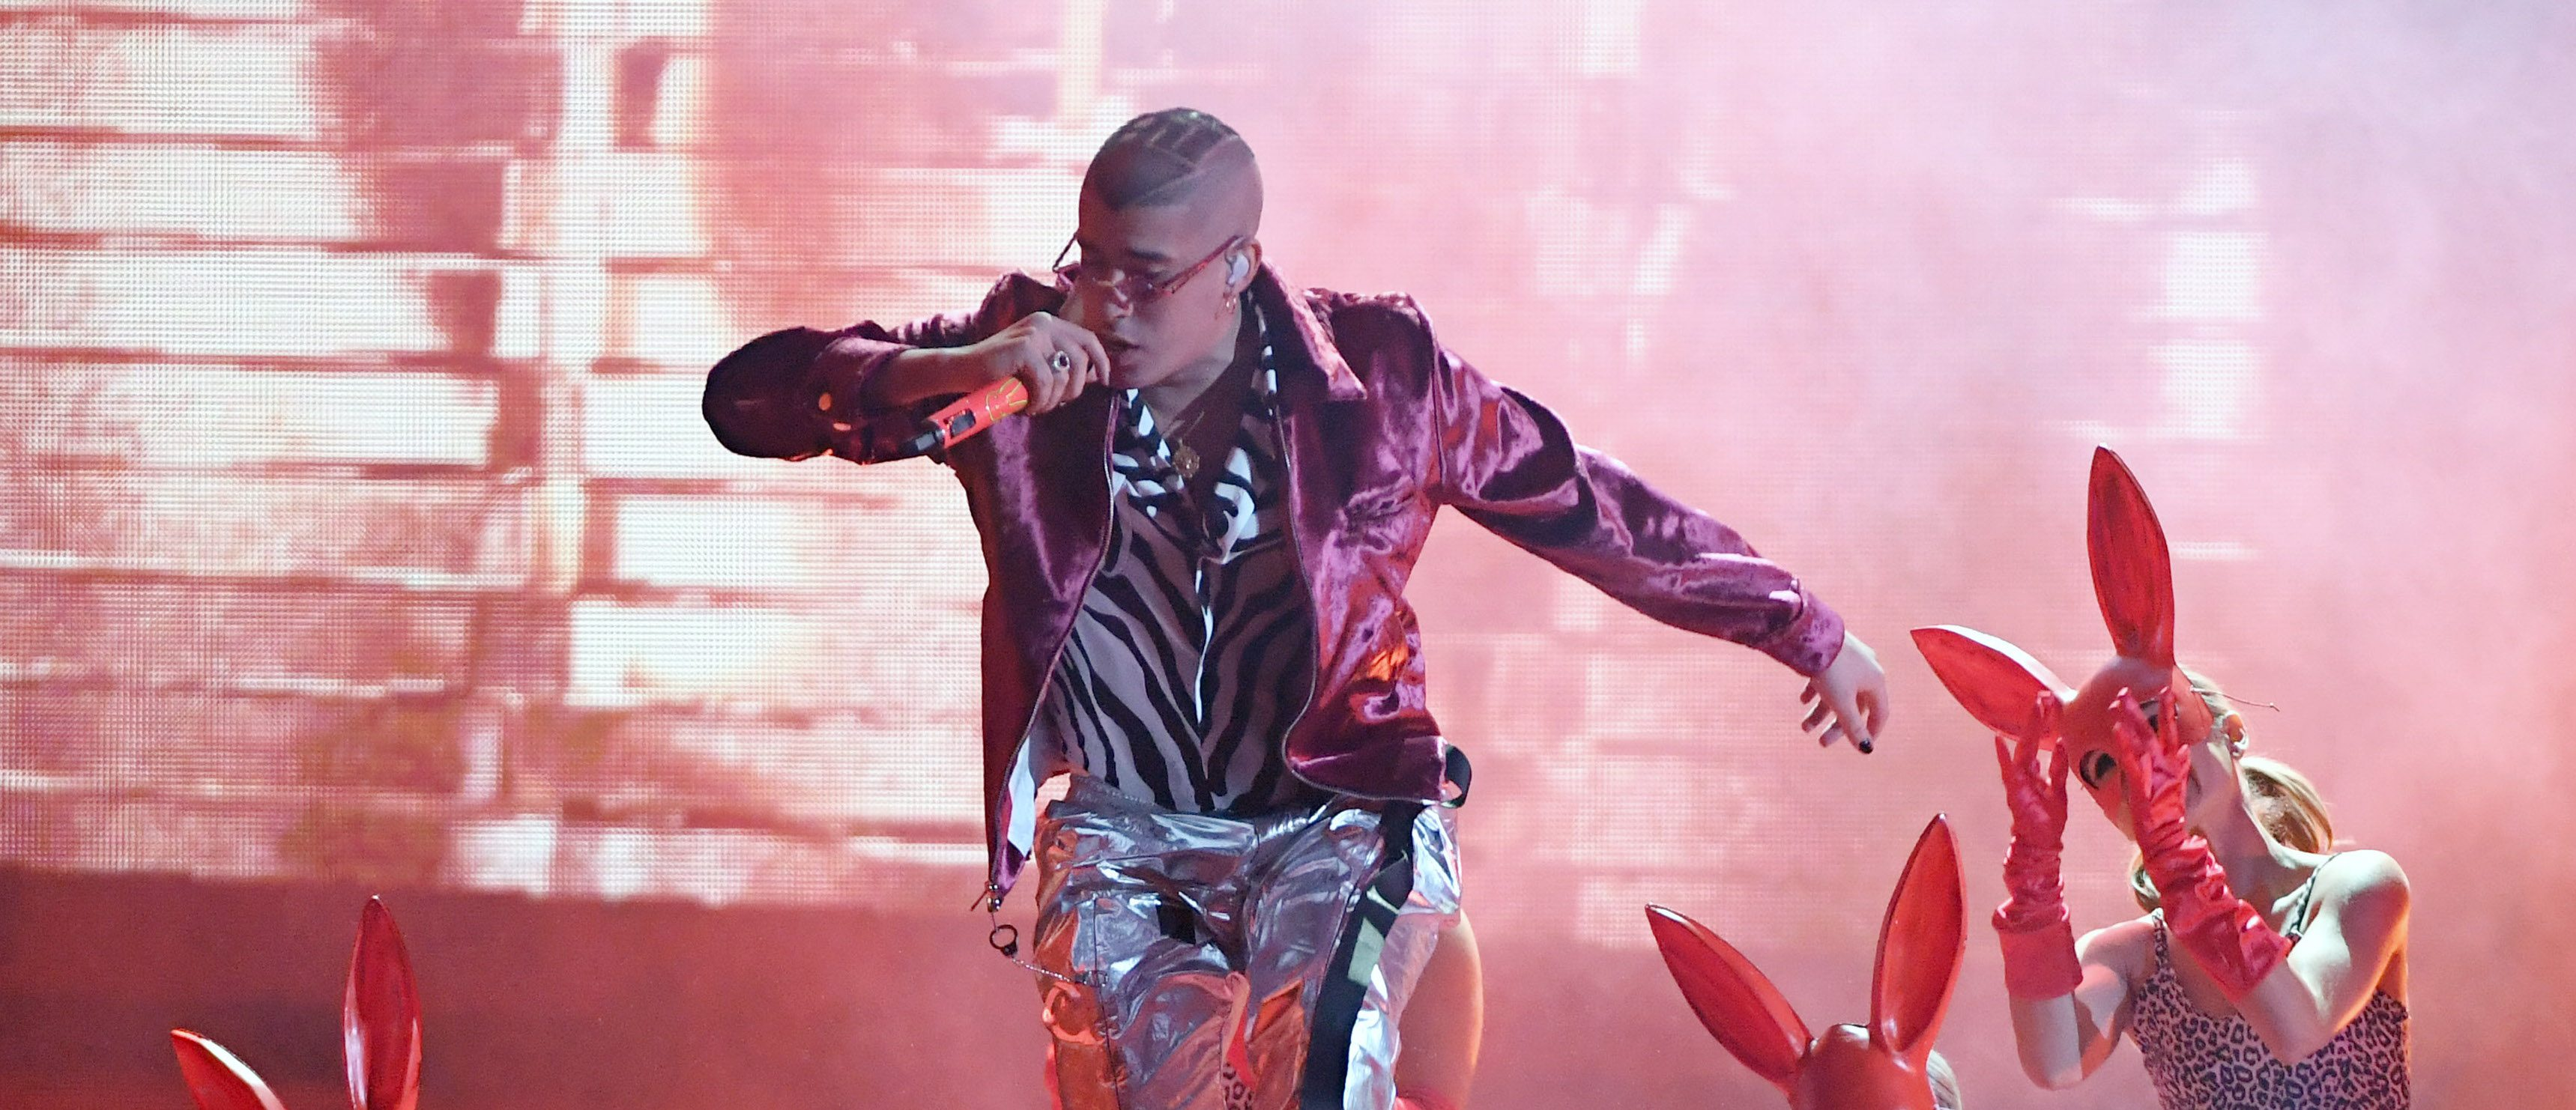 Are Bad Bunny & DJ Luian Getting Back Together?